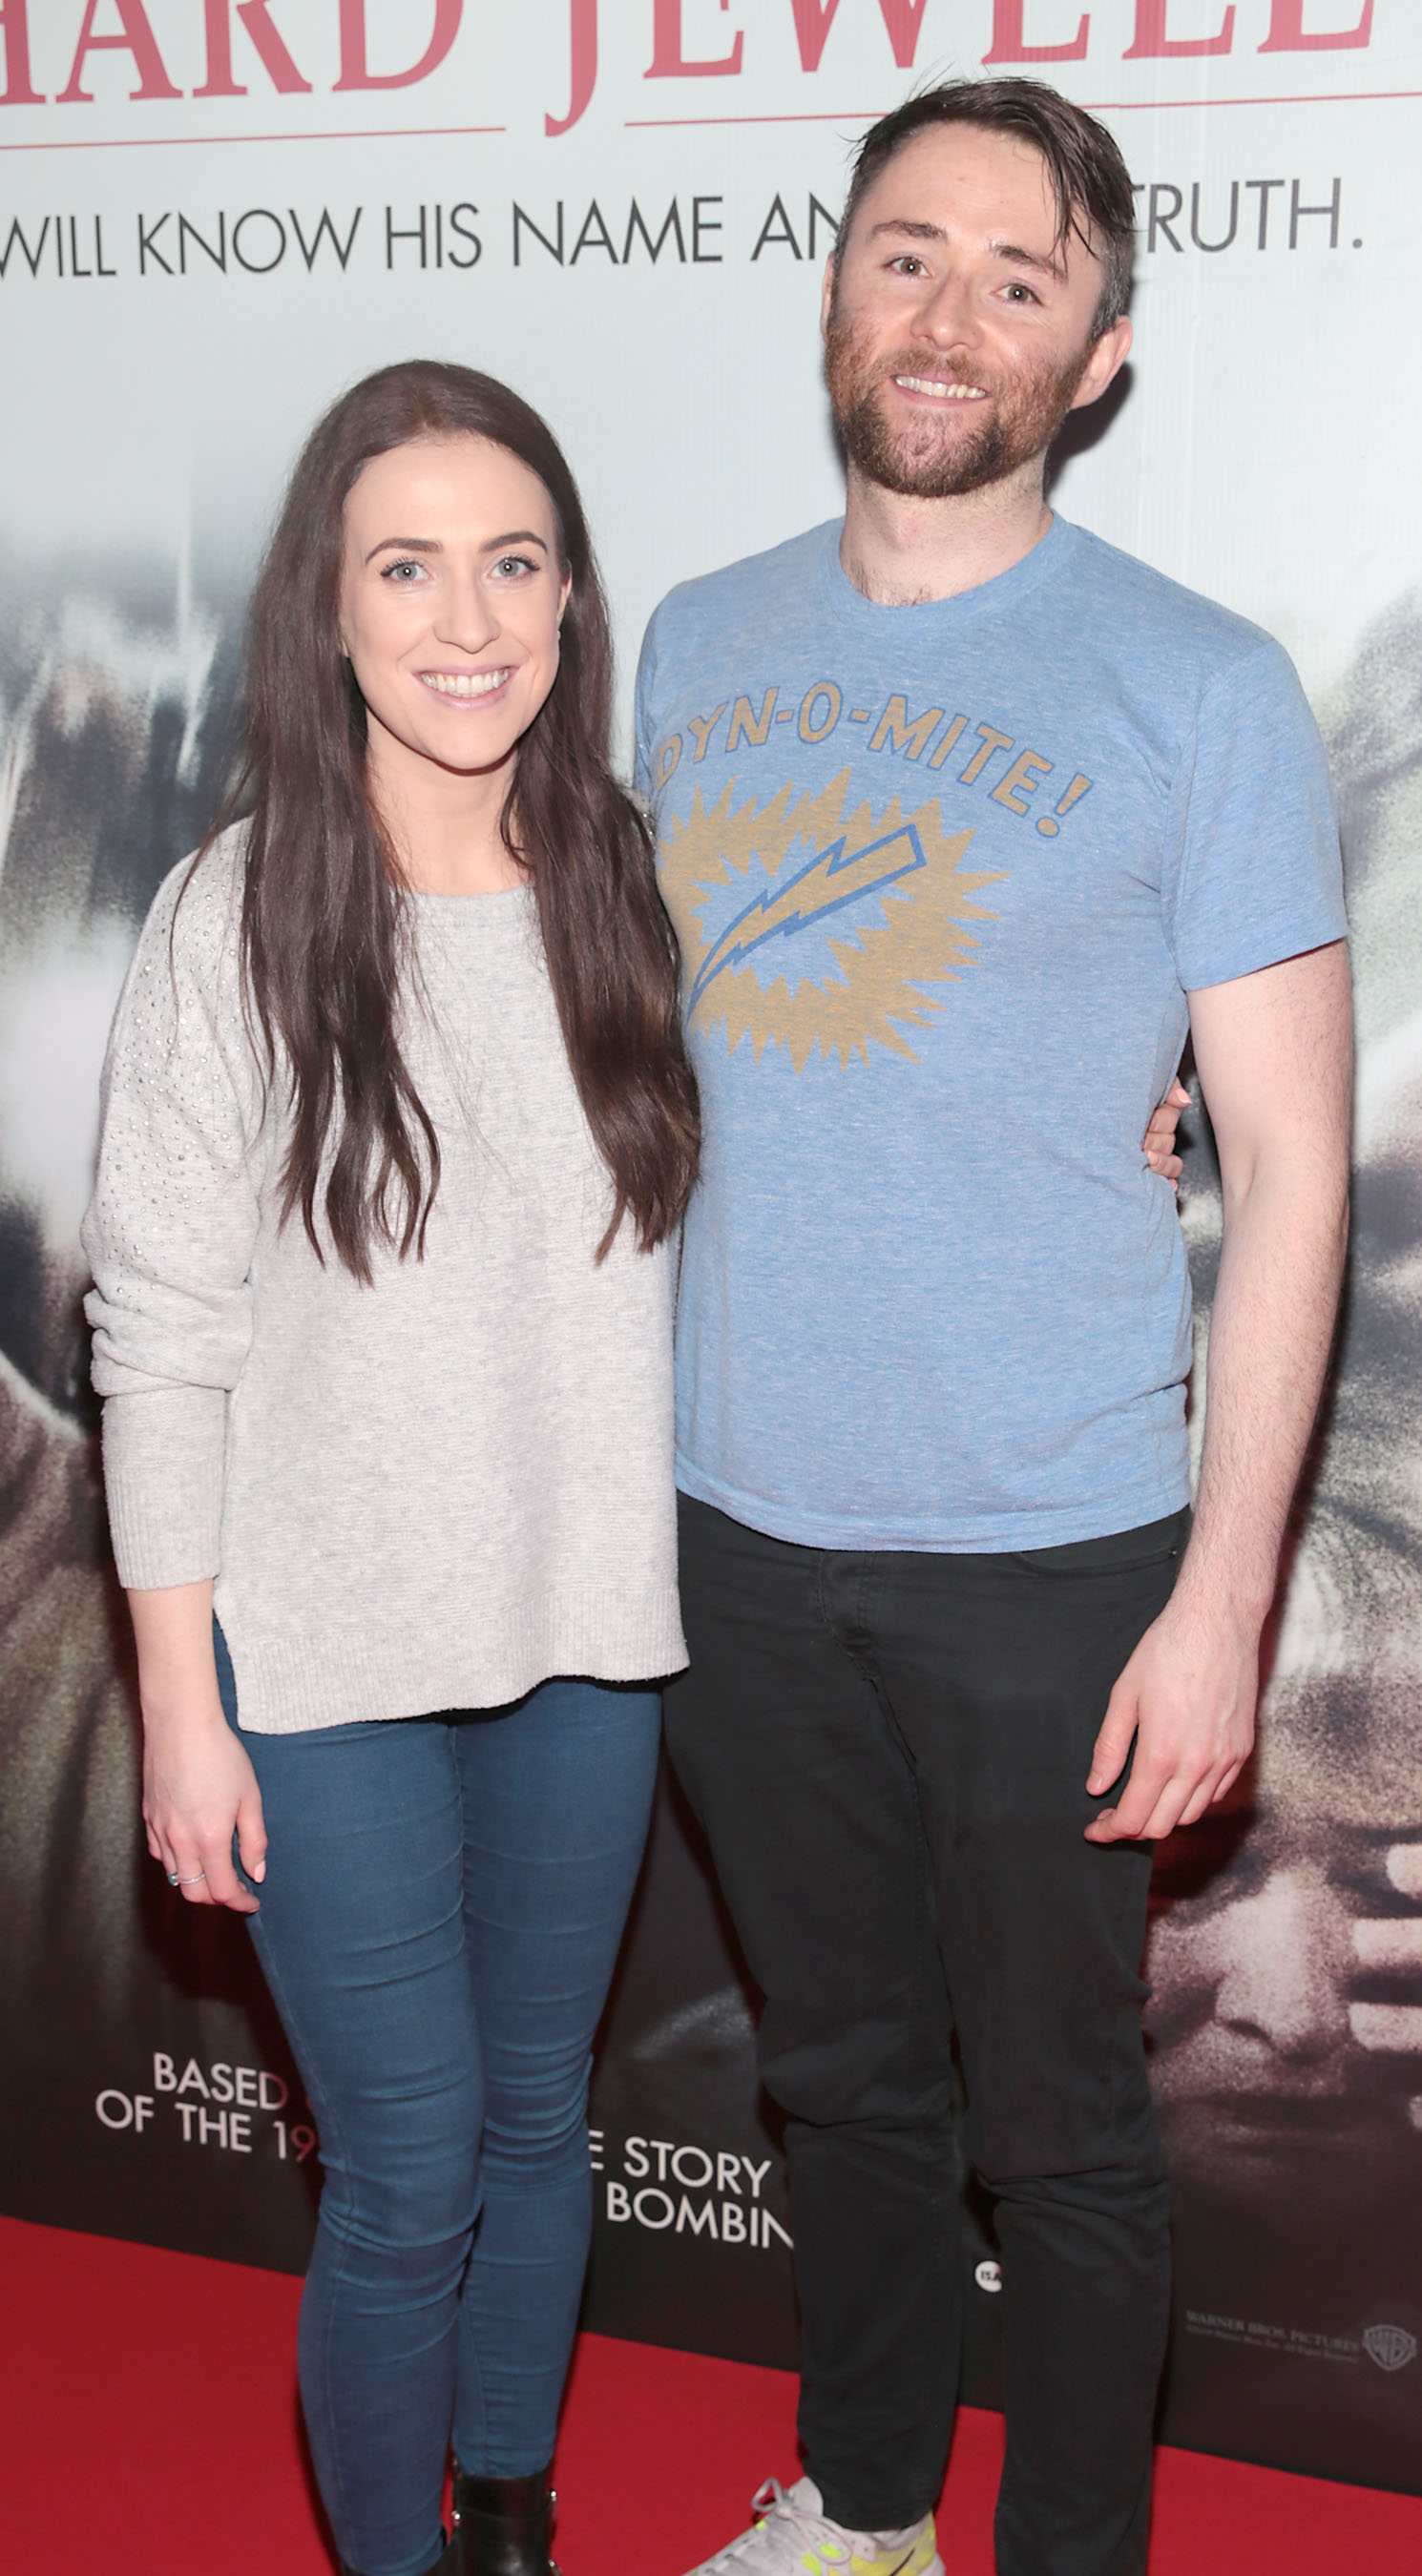 Maria McBride and Shane Long pictured at the special preview screening of Richard Jewell at Cineworld, Dublin. Pic: Brian McEvoy